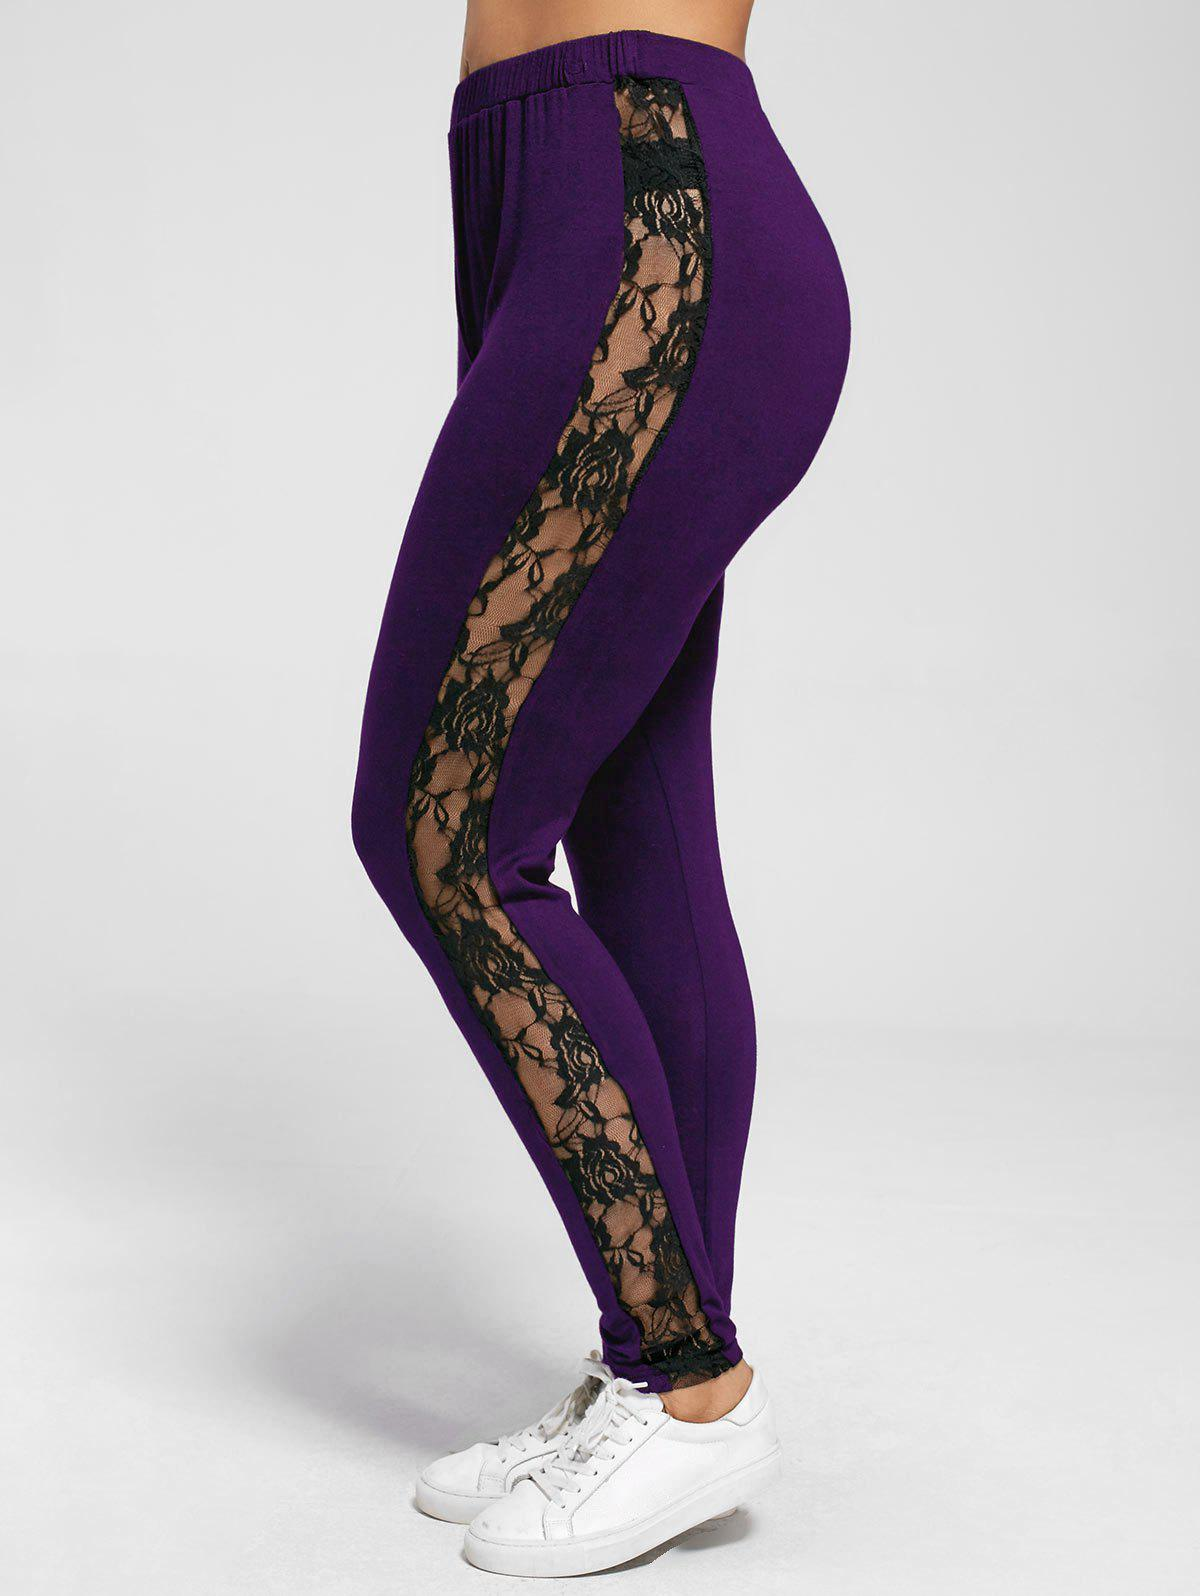 Plus Size Lace Trim Sheer LeggingsWOMEN<br><br>Size: XL; Color: PURPLE; Style: Casual; Length: Normal; Material: Rayon,Spandex; Fit Type: Skinny; Waist Type: Mid; Closure Type: Elastic Waist; Pattern Type: Floral; Embellishment: Lace; Pant Style: Pencil Pants; Weight: 0.2700kg; Package Contents: 1 x Leggings;